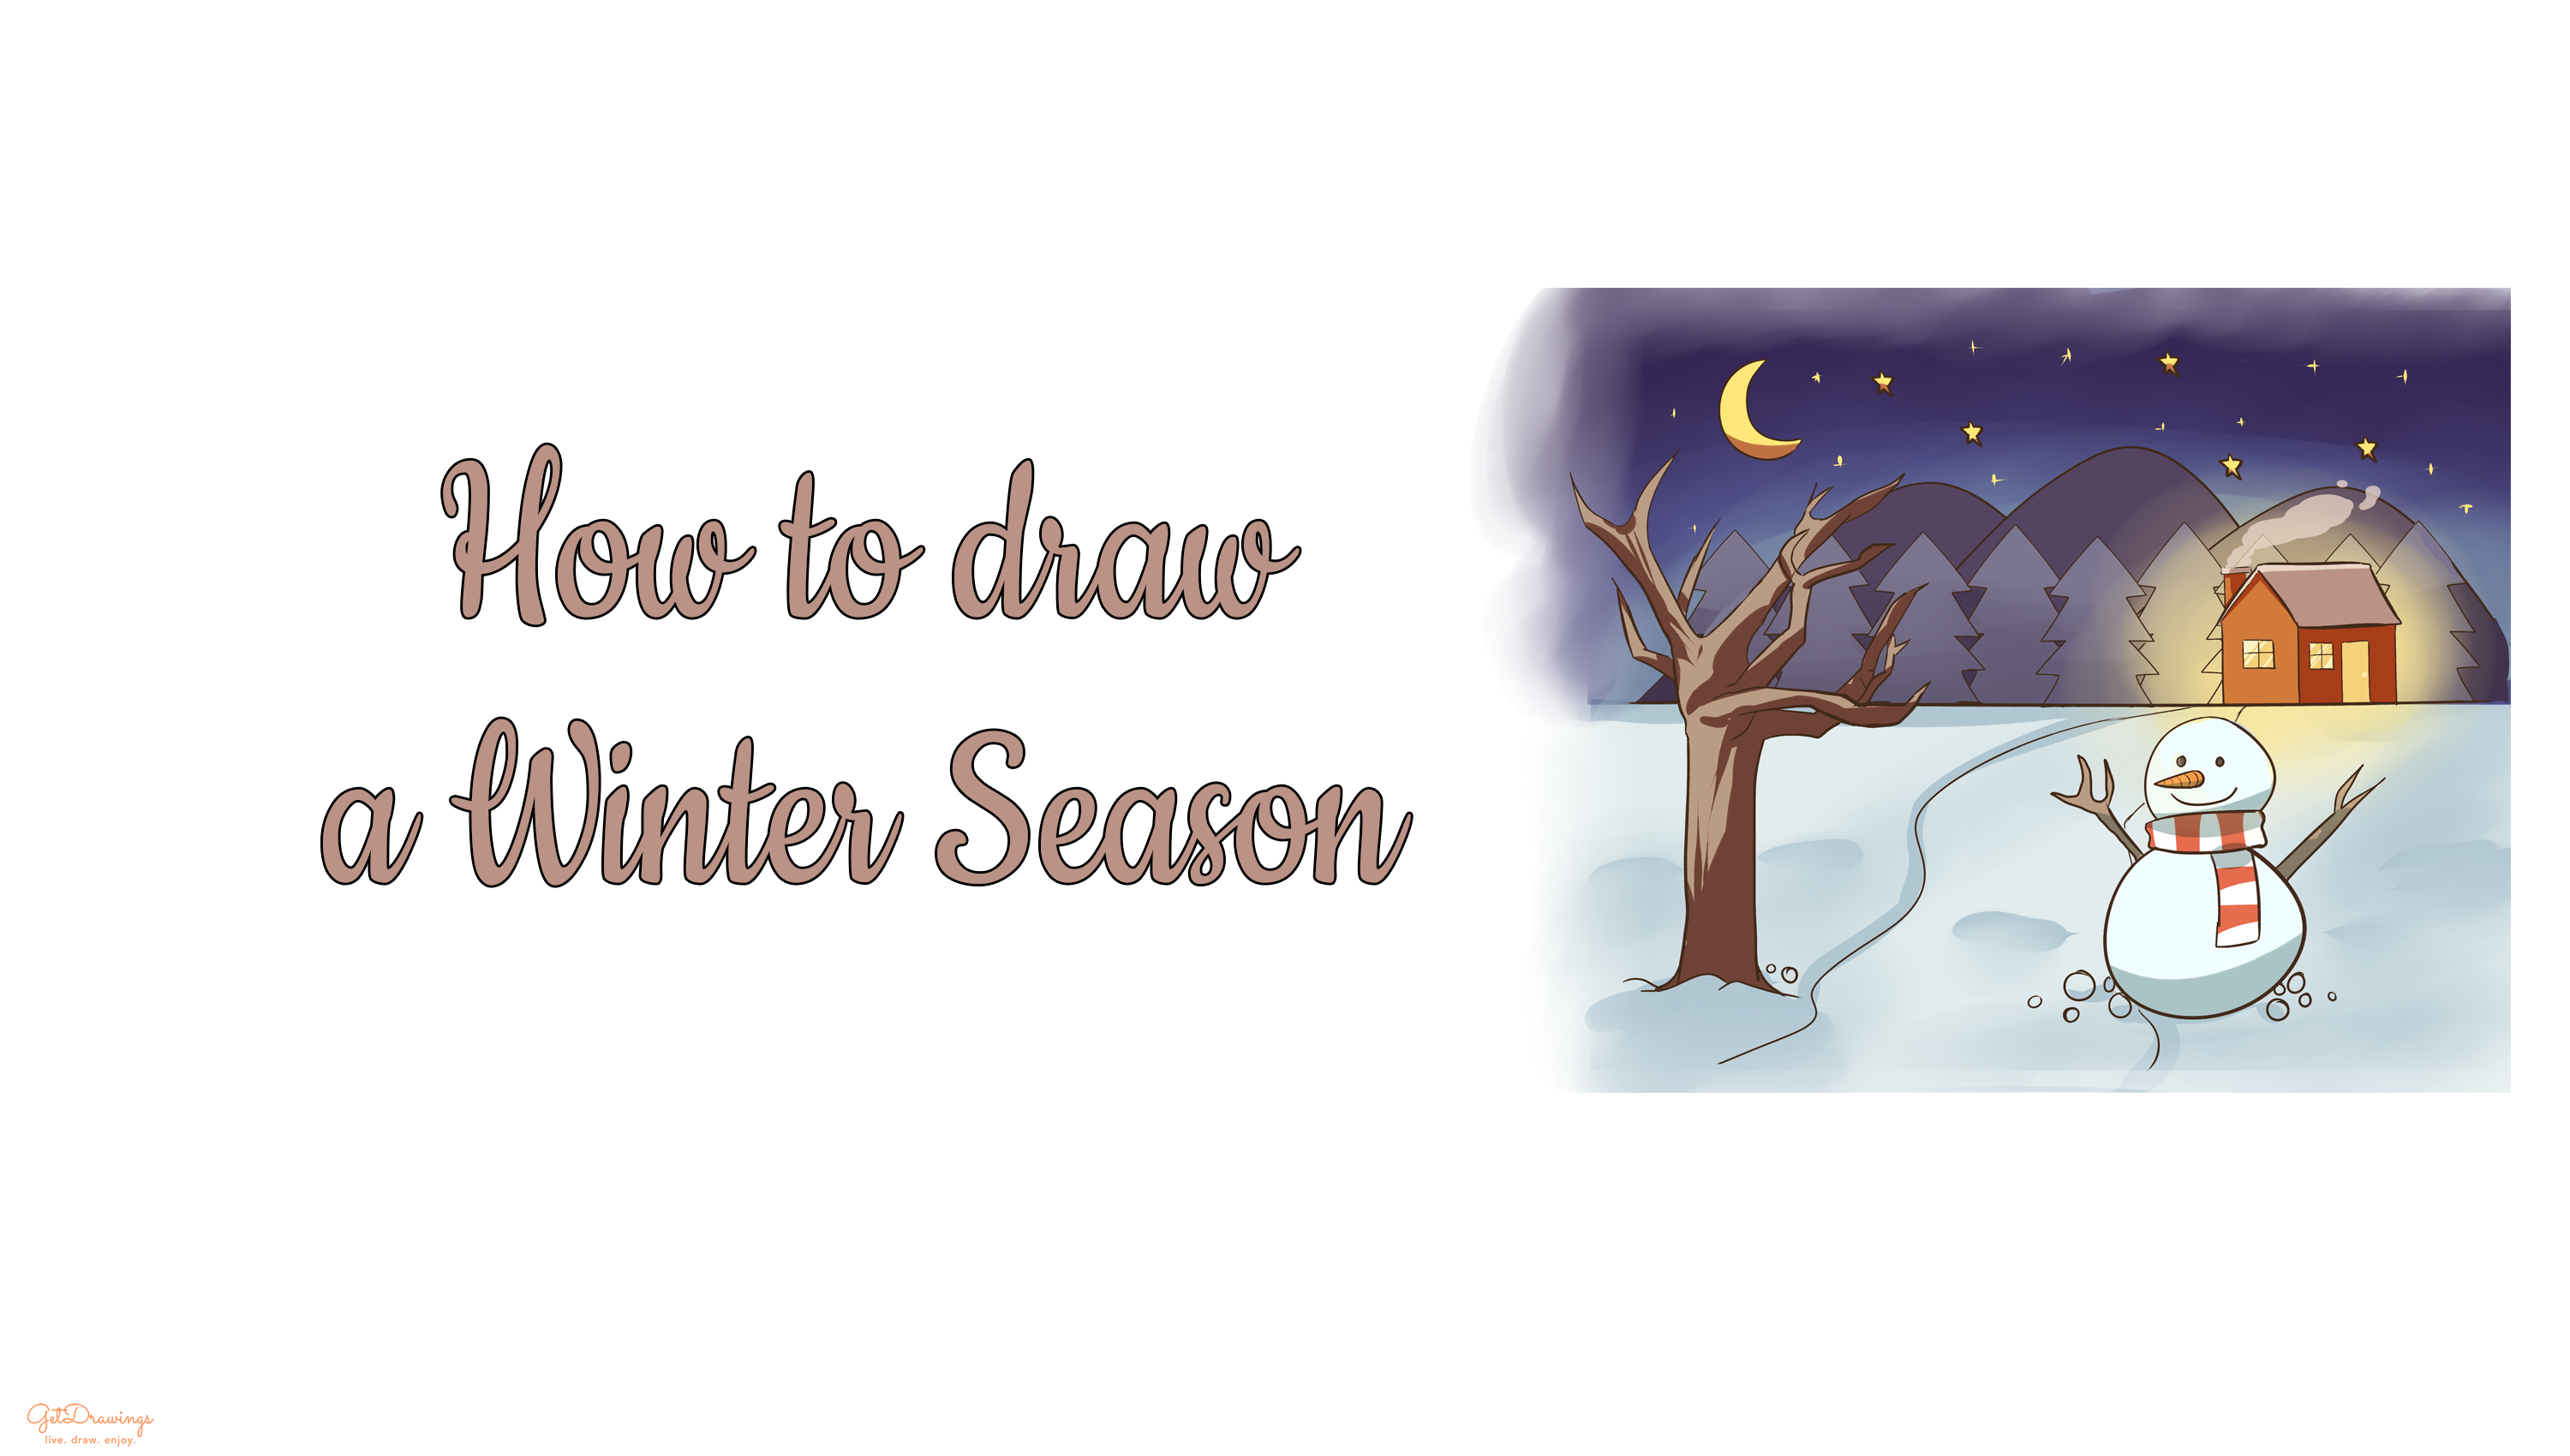 How to draw a Winter Season?